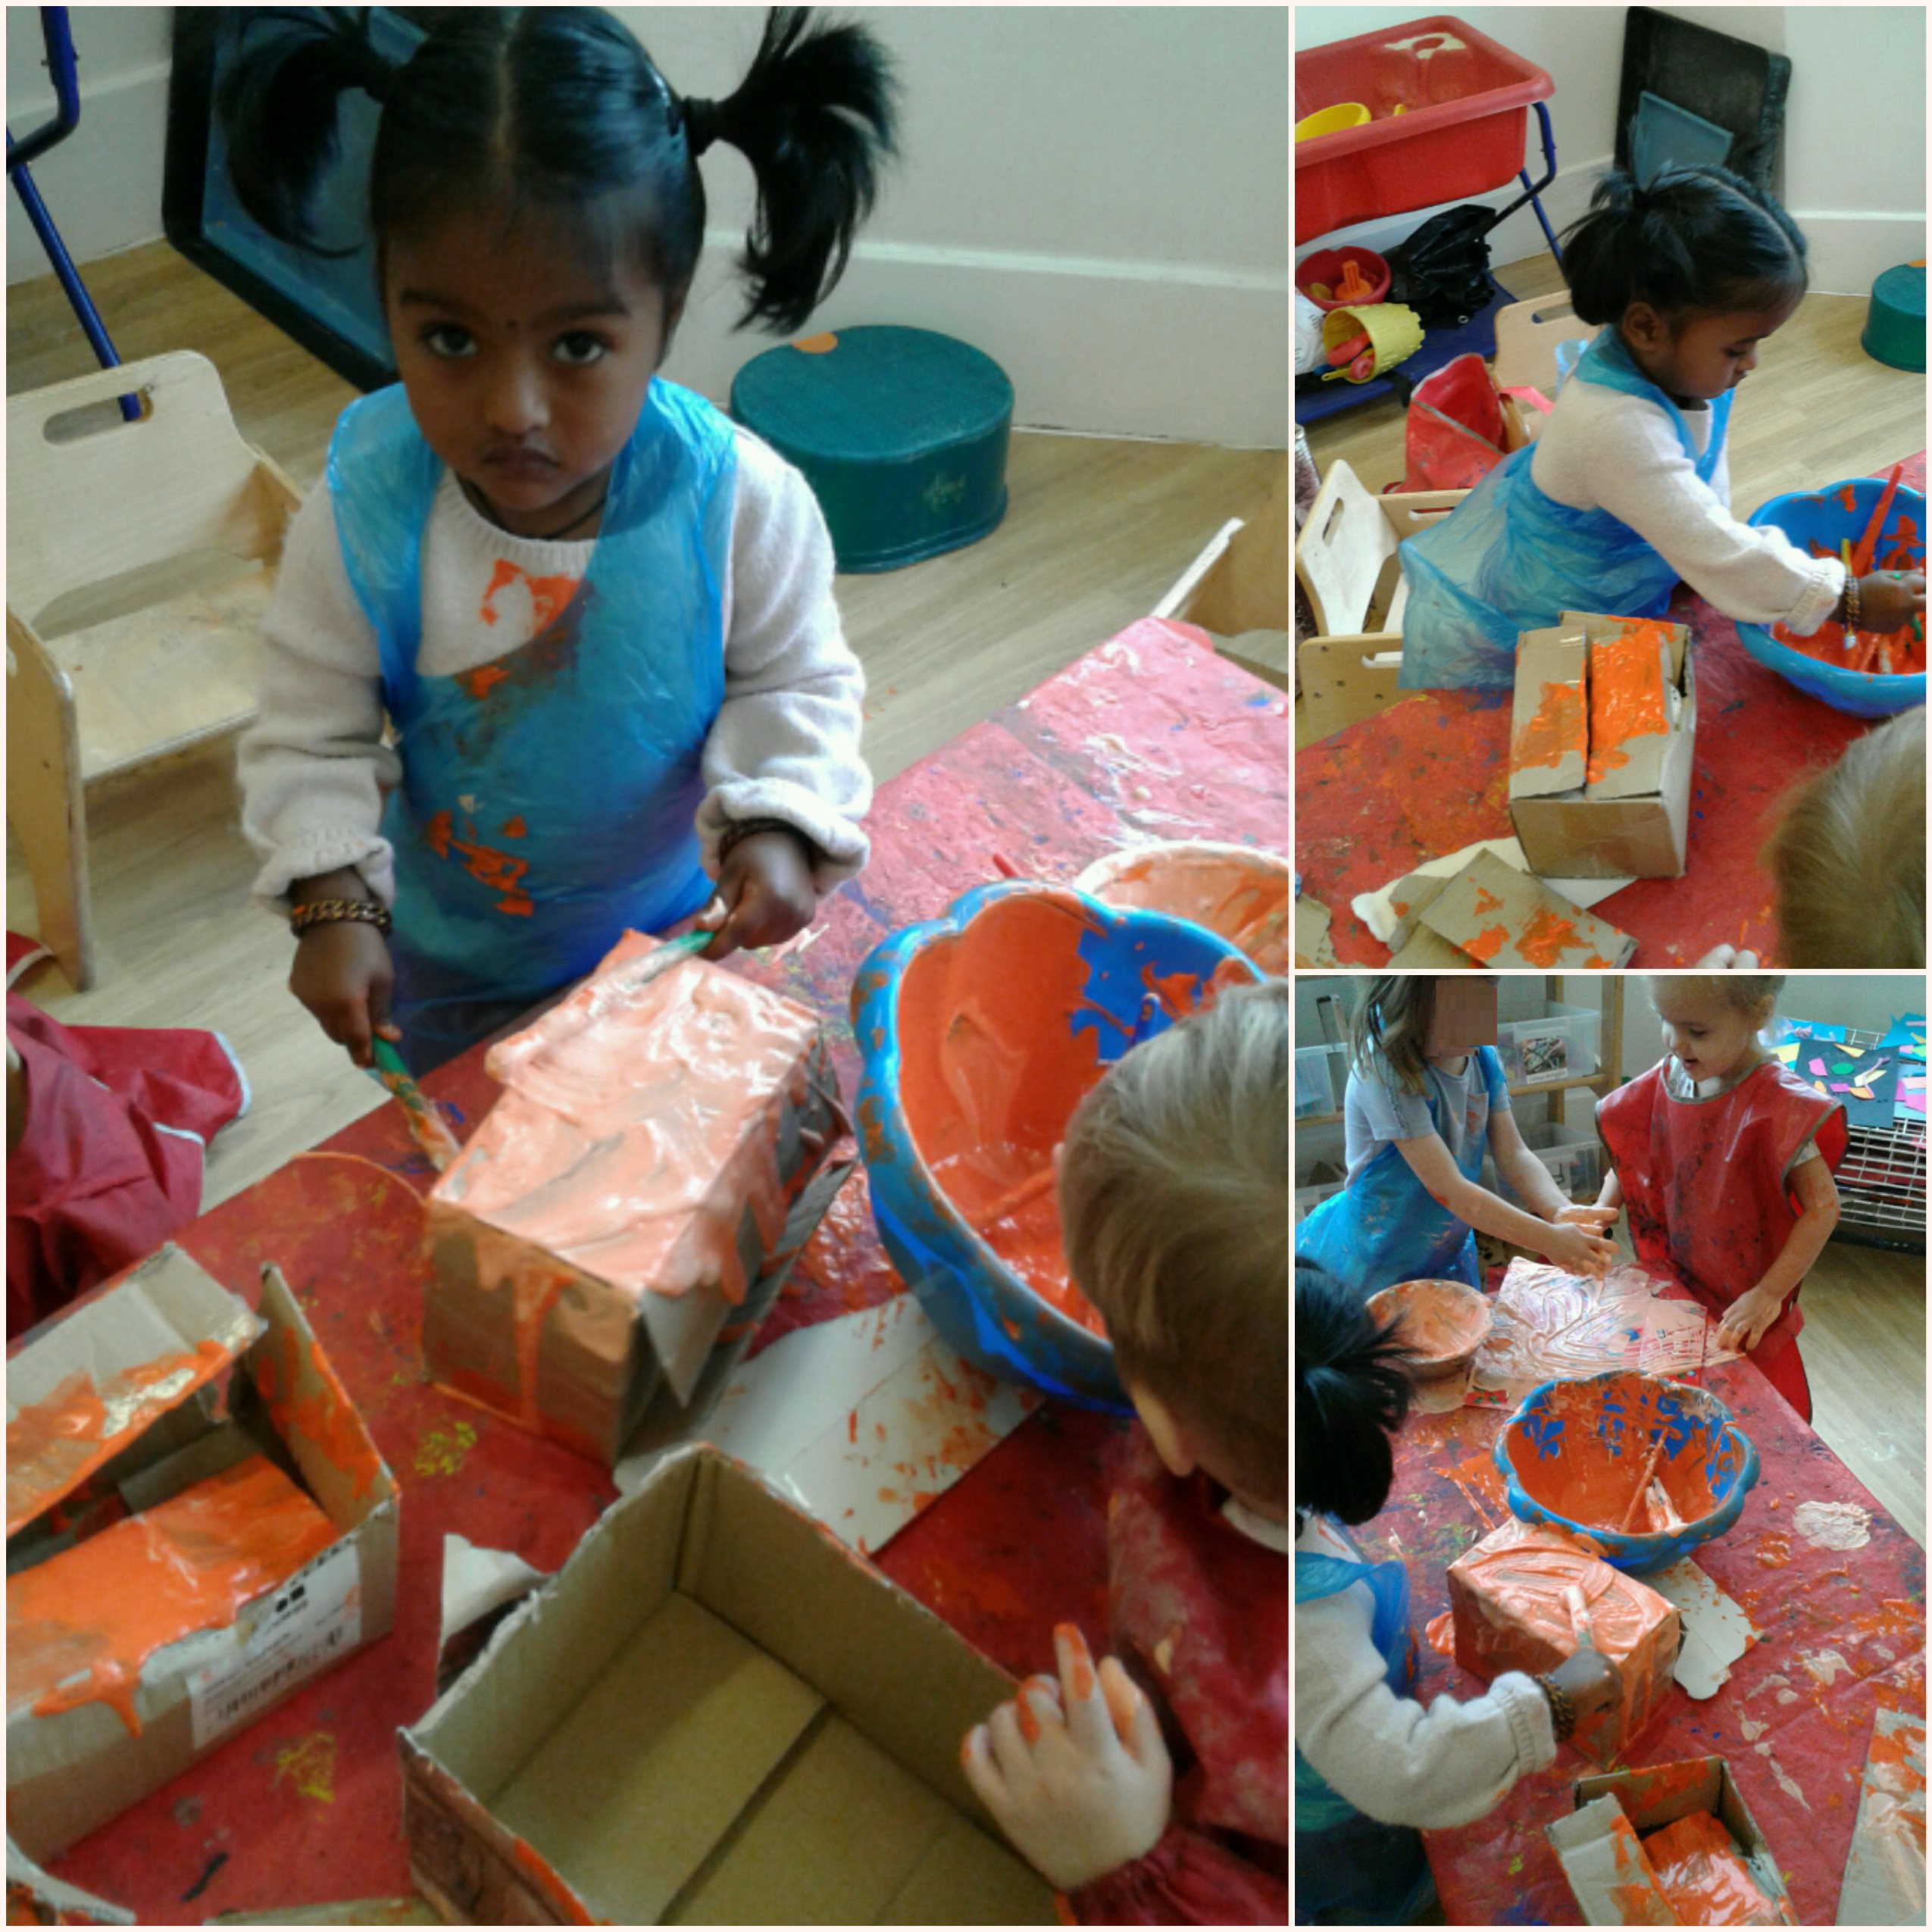 Imaginations have been flowing in the Hinckley pre school with loose parts play